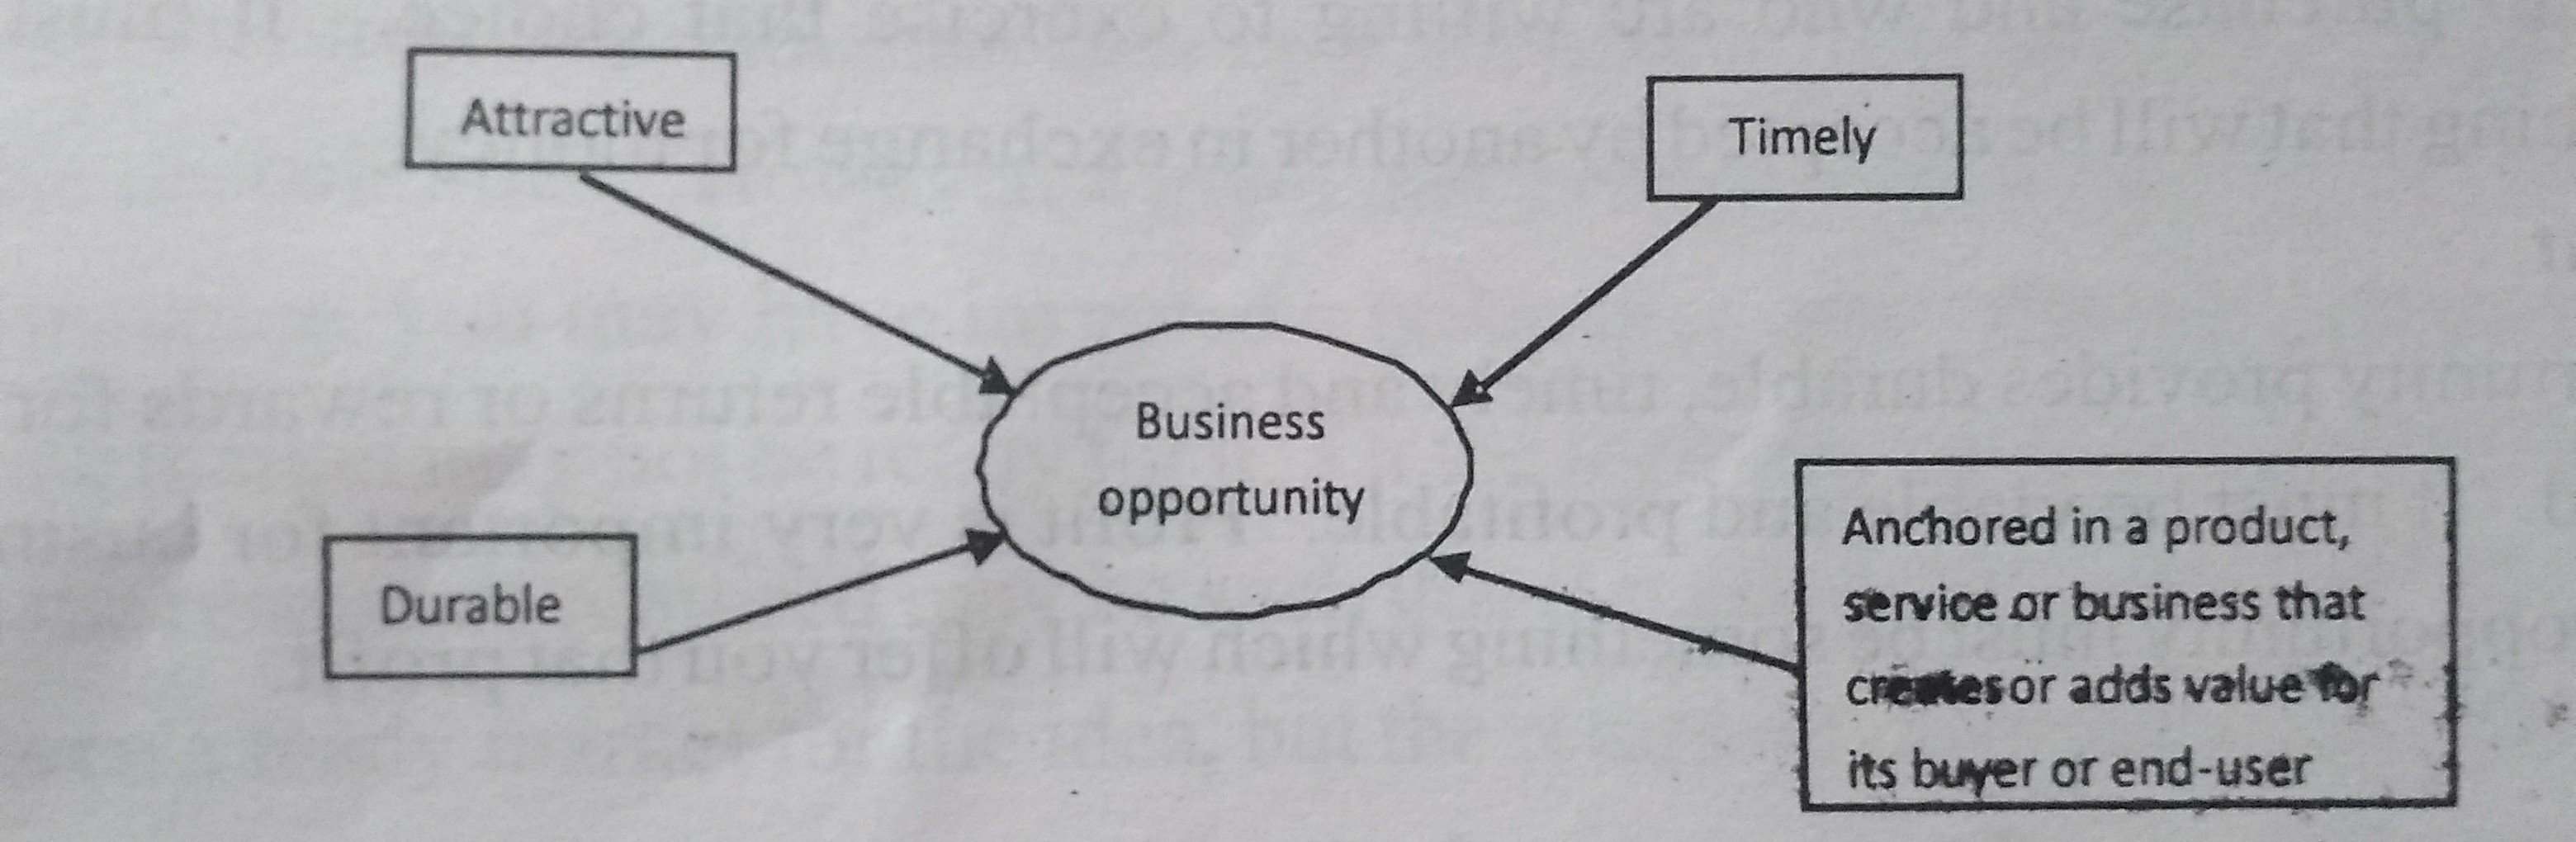 Four essential qualities of a business opportunity